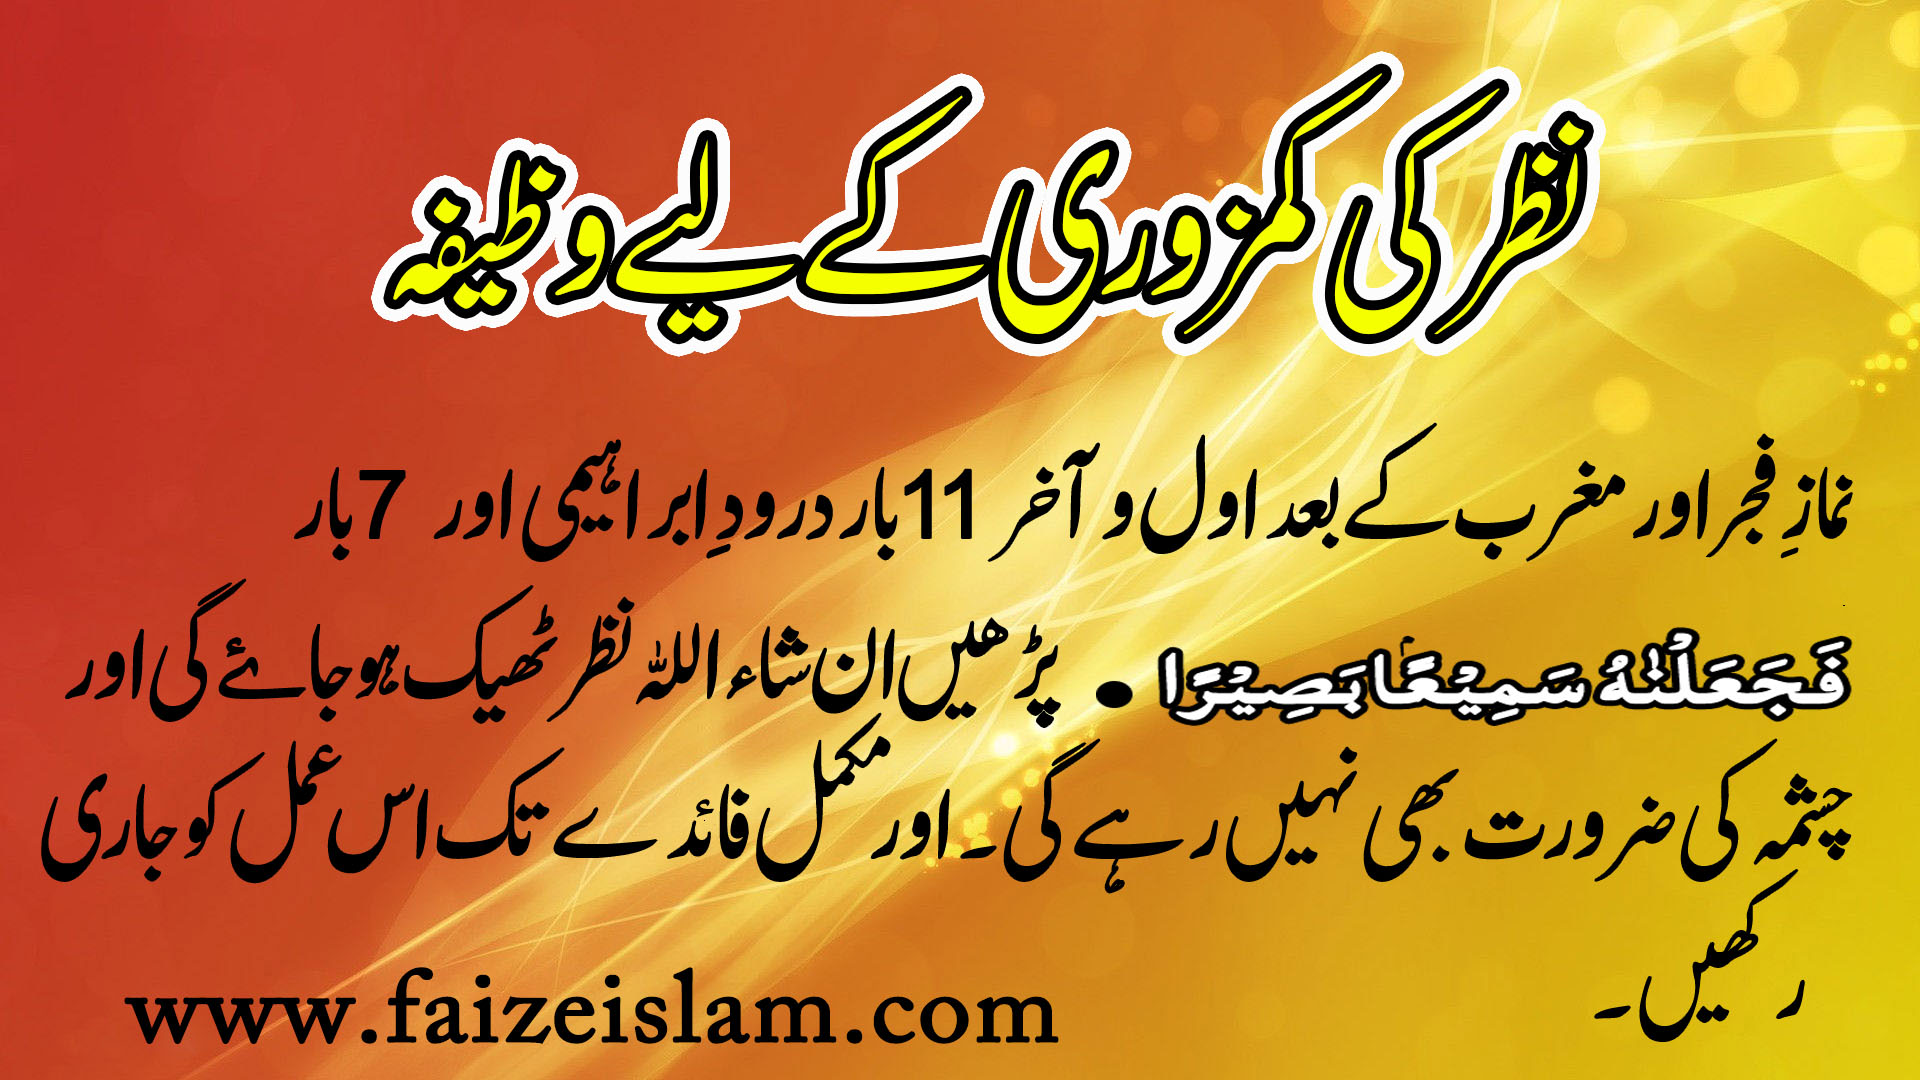 Photo of Nazar Ke Kamzoori Khatam Karnay Kay Liye Wazifa In Urdu